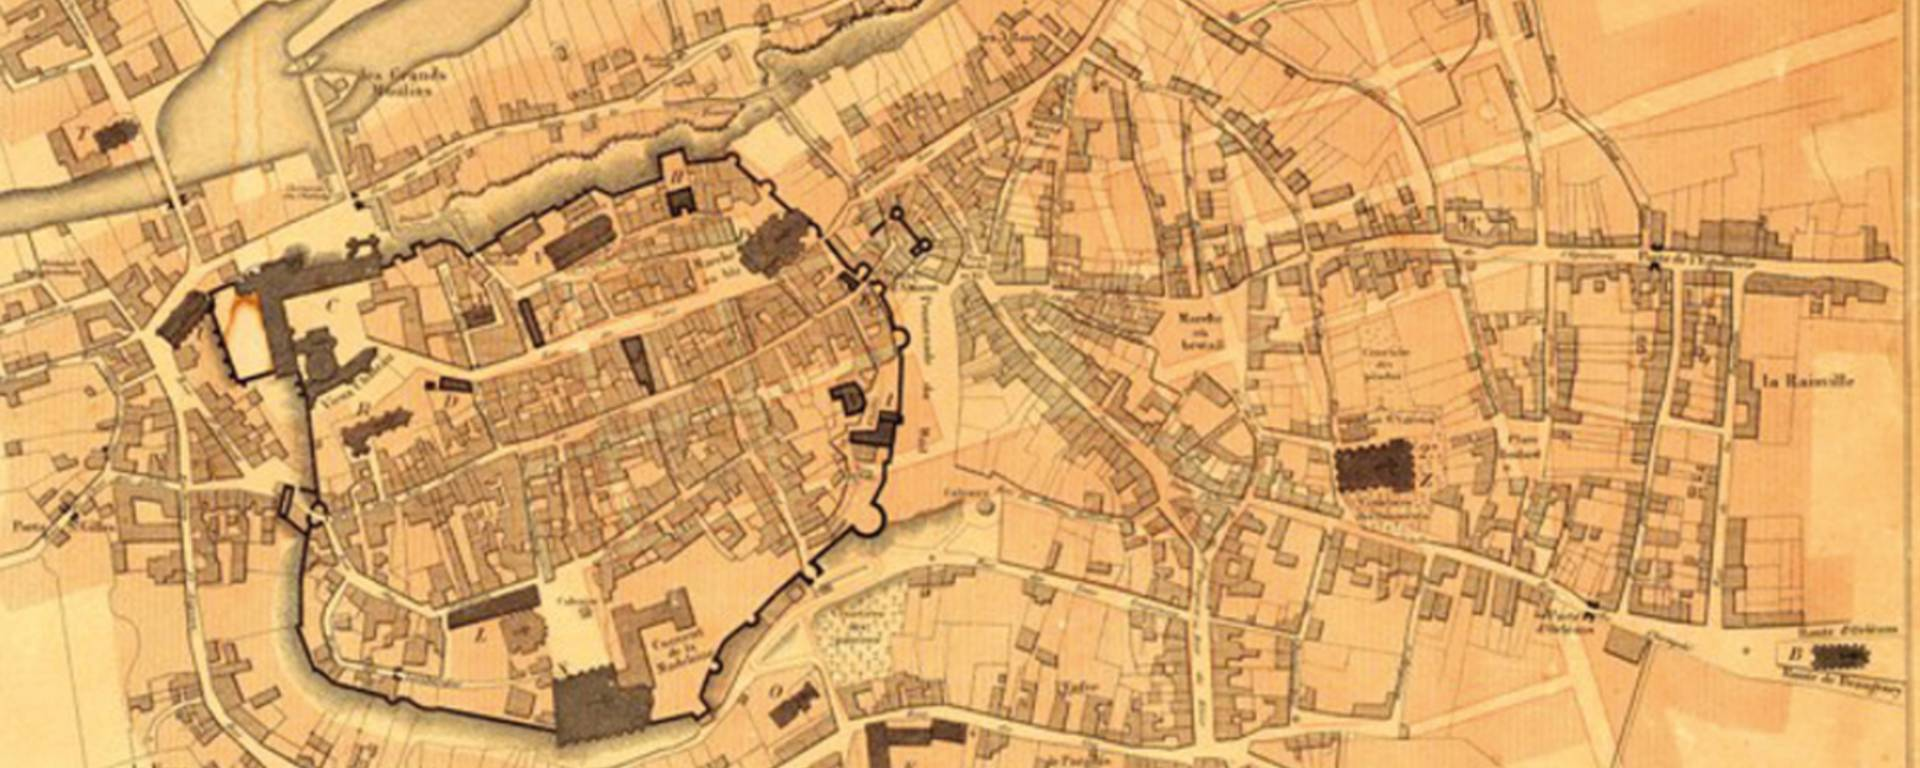 Plan of Châteaudun before the fire of 1723